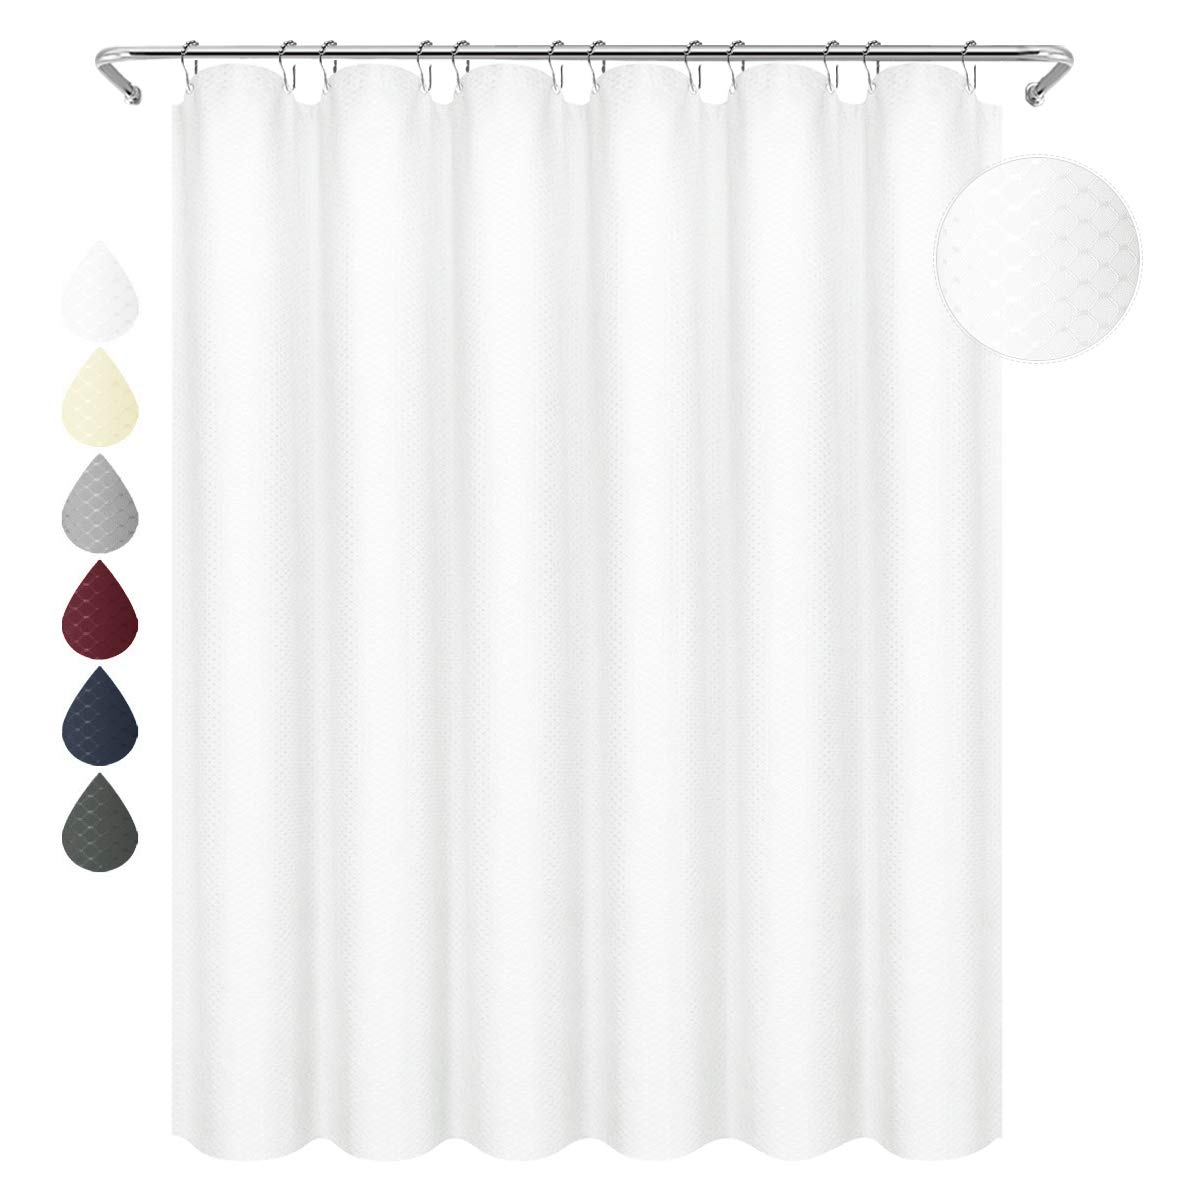 Eforgift Easy Care 100 Polyester Shower Curtain Water Repellent Thick White Waffle Weave Fabric Curtain Bath Long Size 72 Inch X 78 Inch Home Hotel Decor